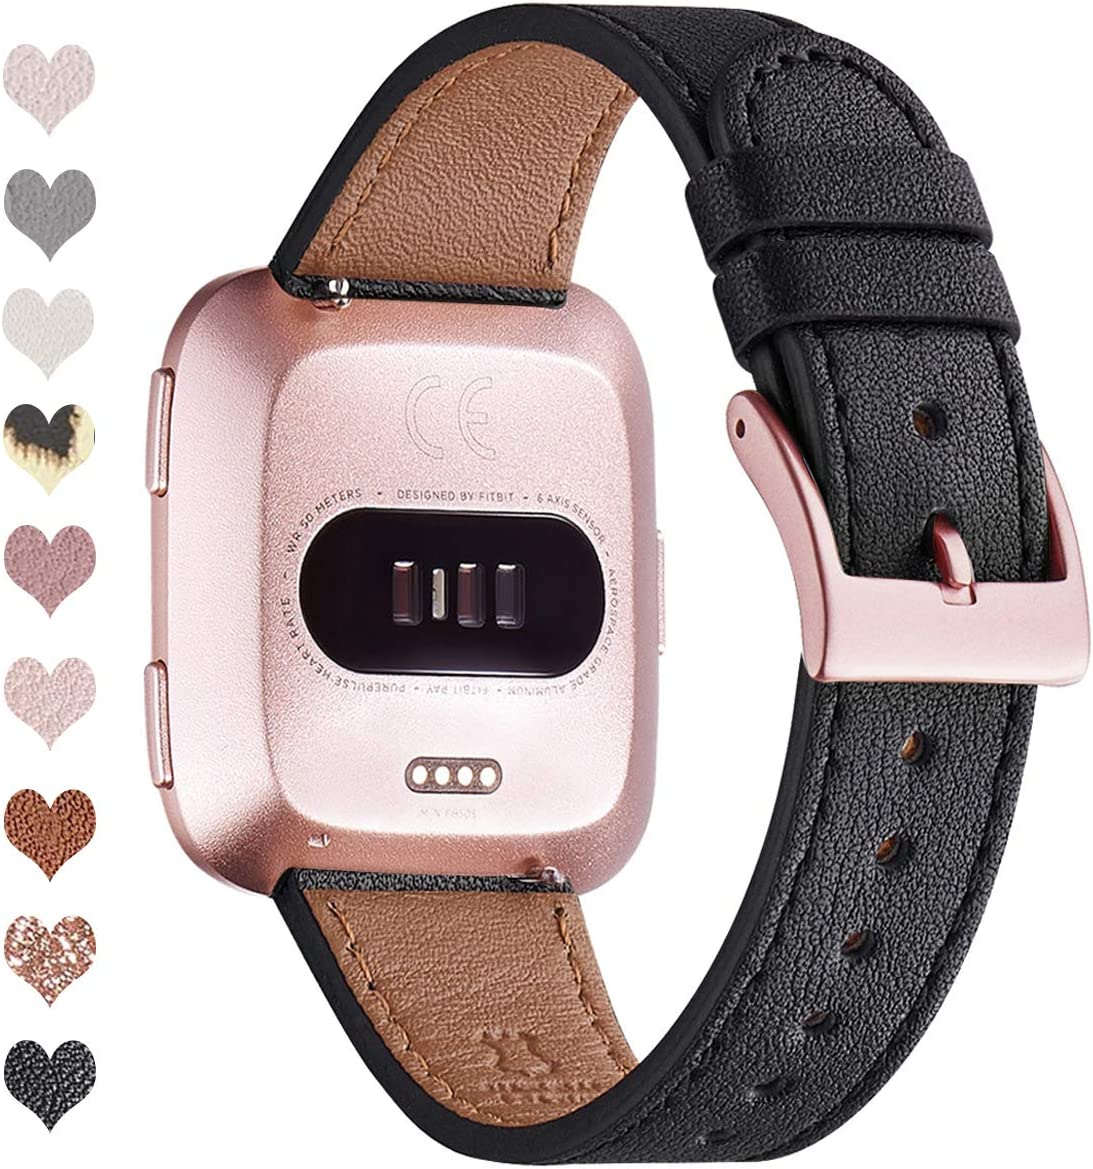 OMIU Bands Compatible with Fitbit Versa/Versa 2/Versa Lite/Versa SE for Women and Men, Classic Soft Leather Strap Replacement Wristband for Fitbit Versa Smart Fitness Watch (Black/Rose Gold)